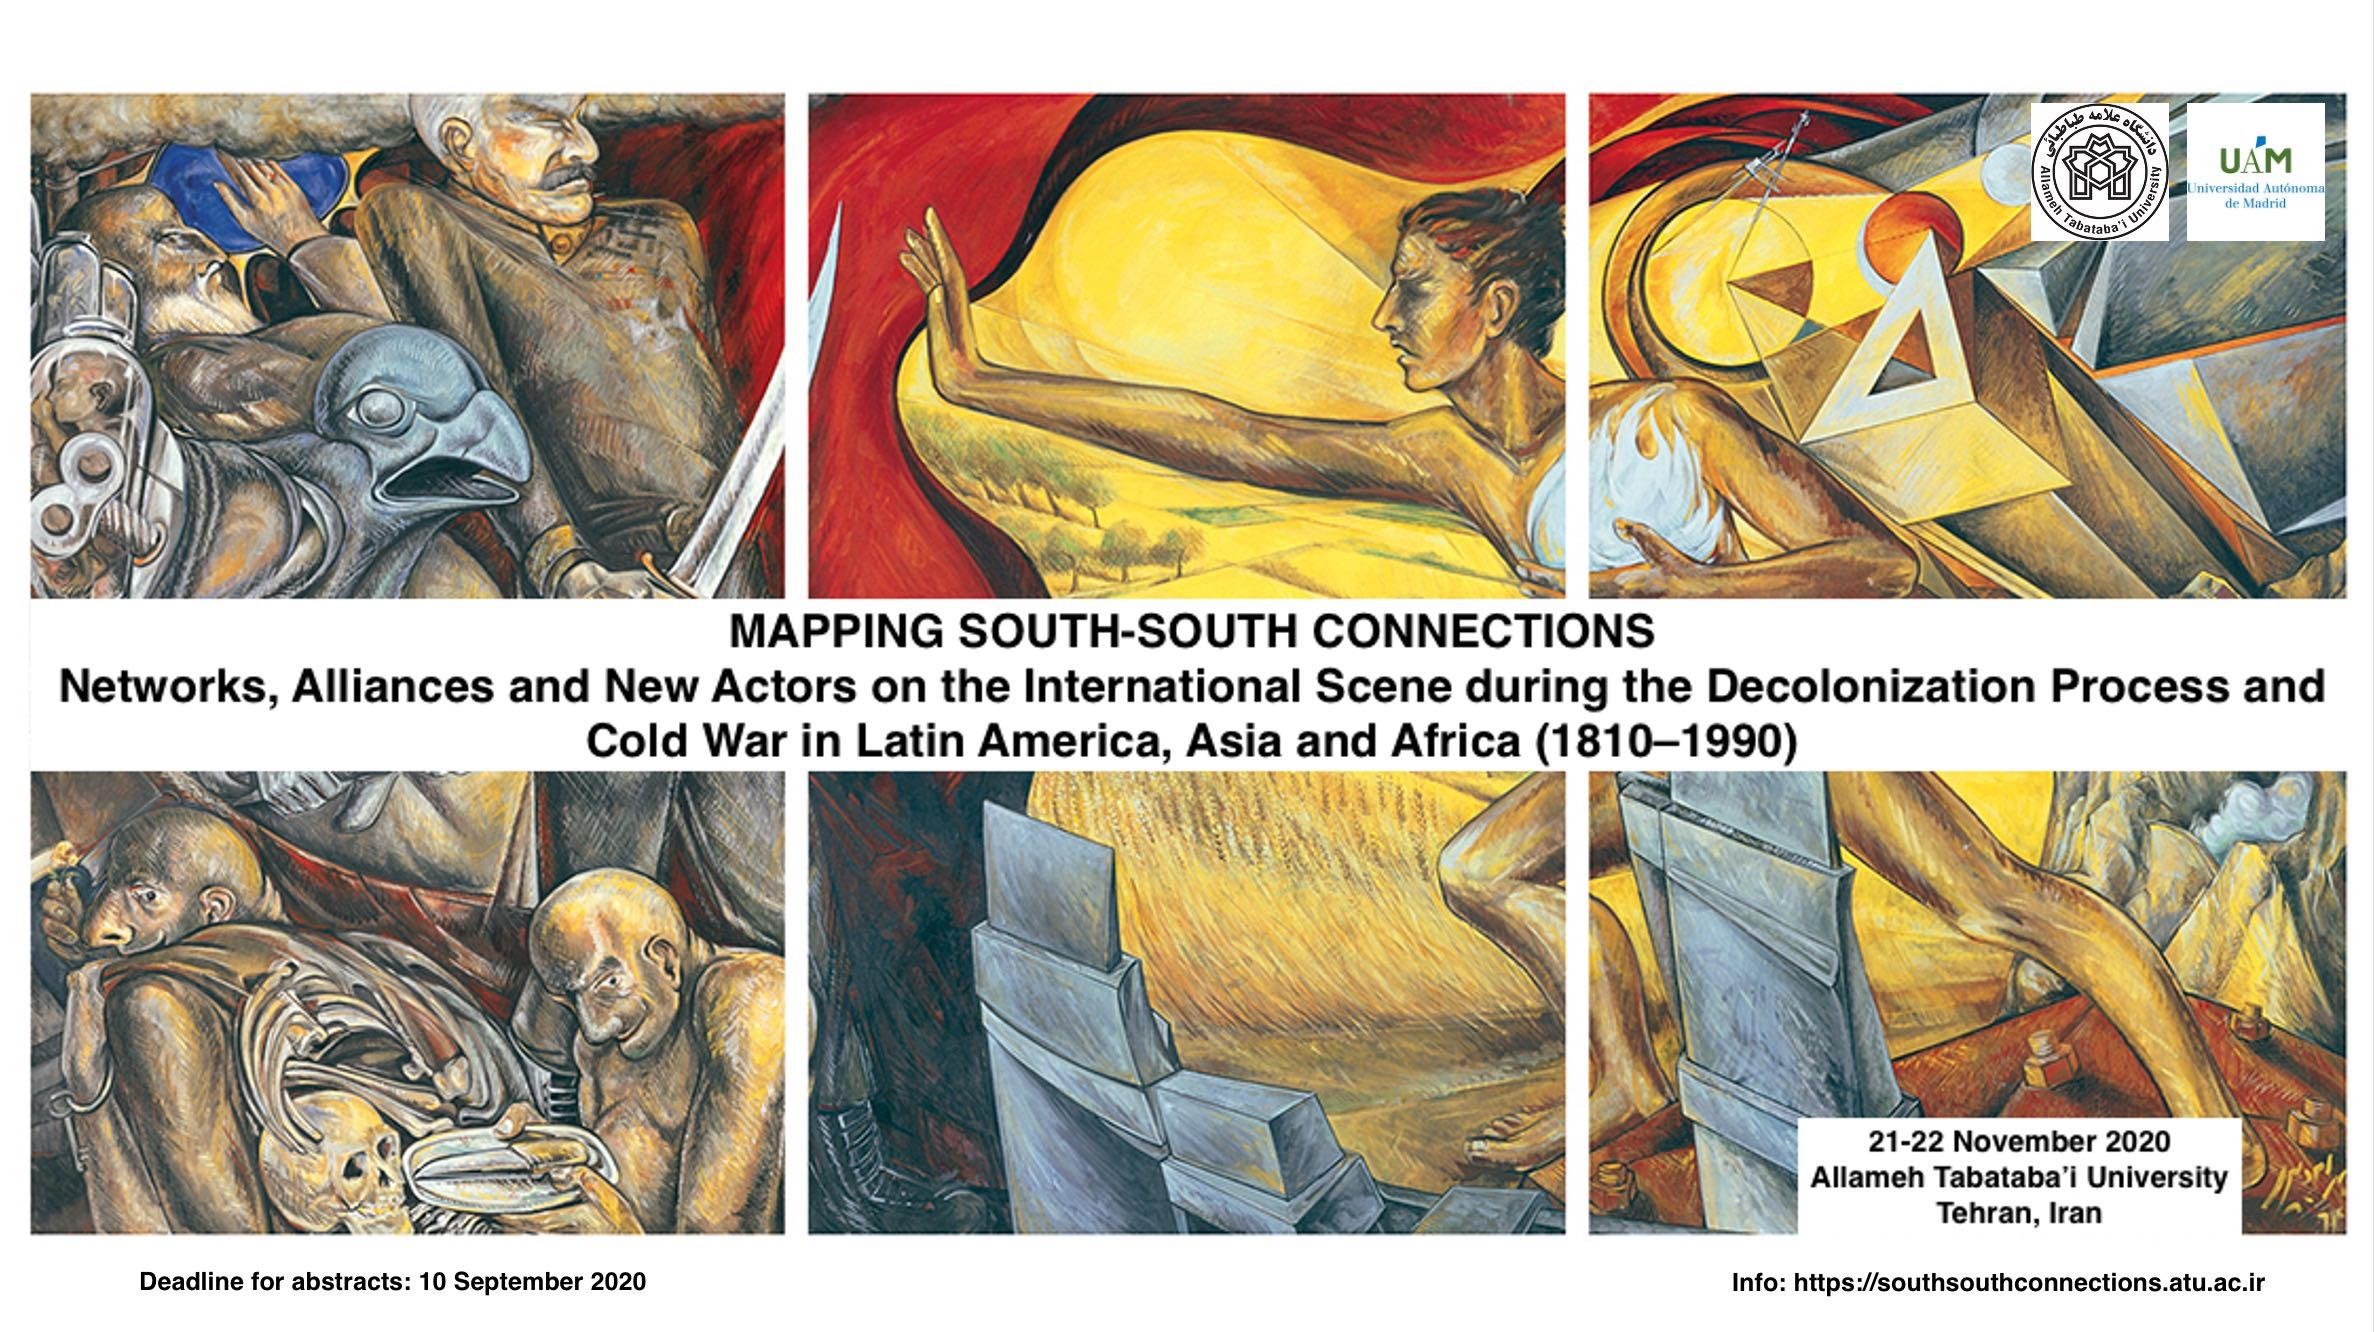 Mapping South-South Connections: Networks, Alliances and New Actors on the International Scene during the Decolonization Process and Cold War in Latin America, Asia and Africa (1810–1990)